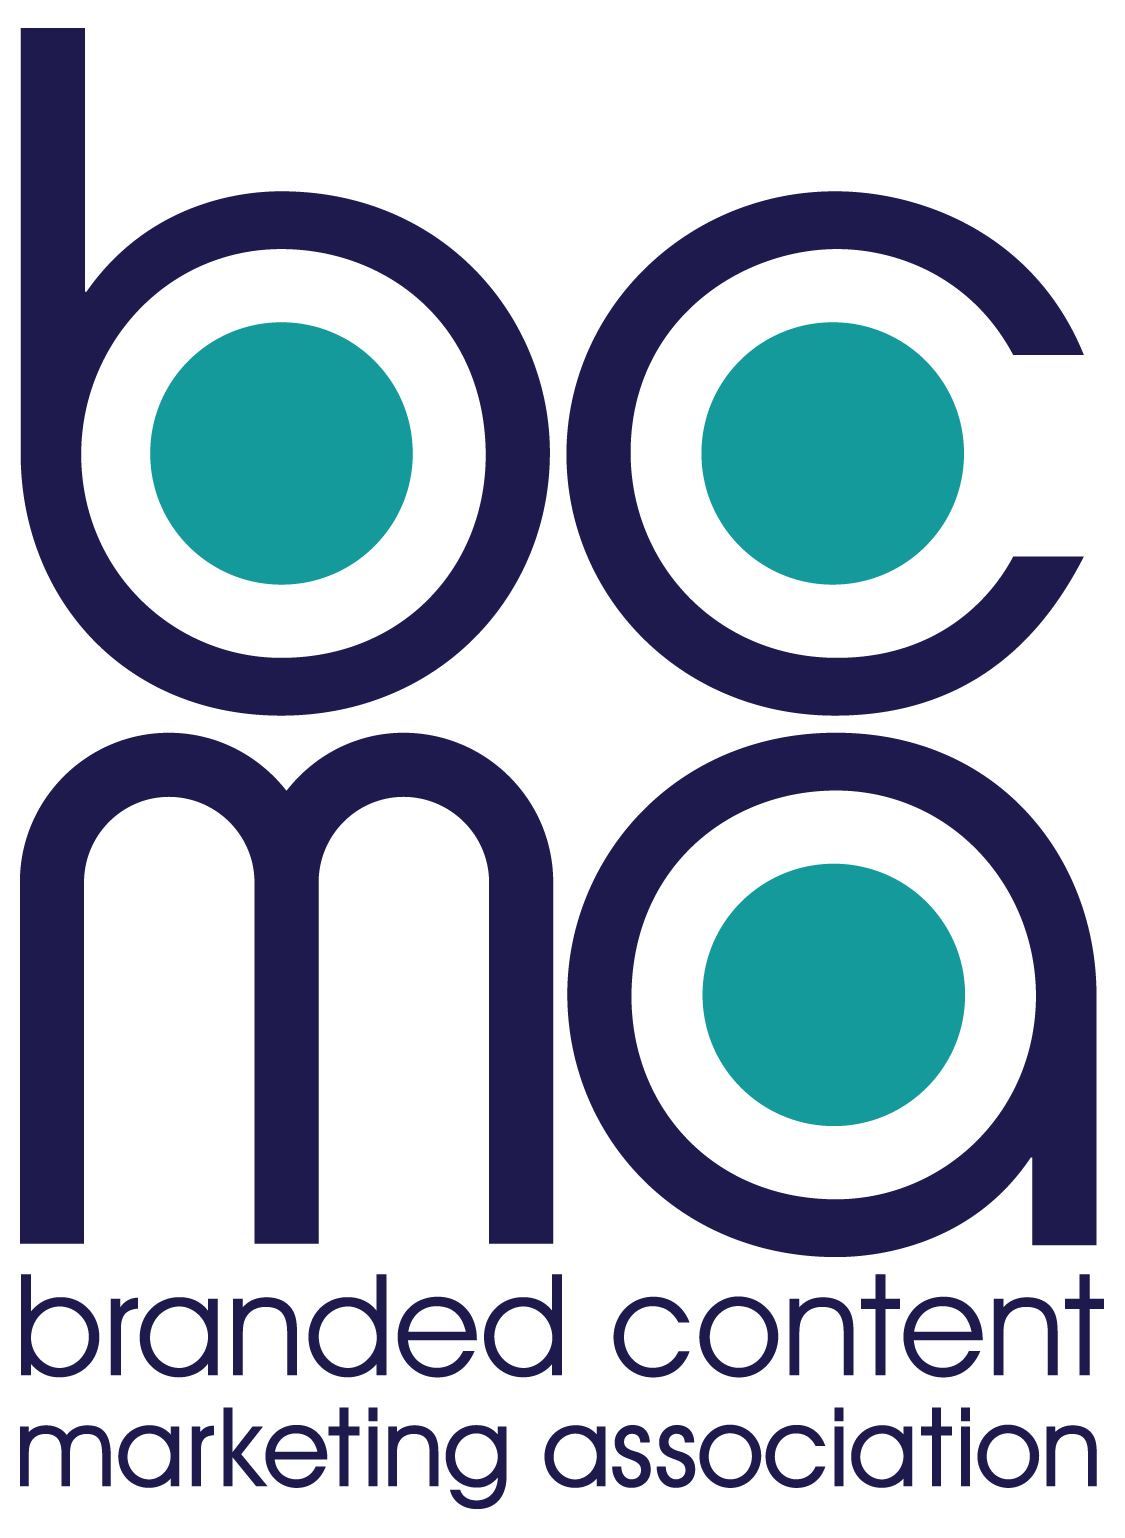 The Branded Content Marketing Association